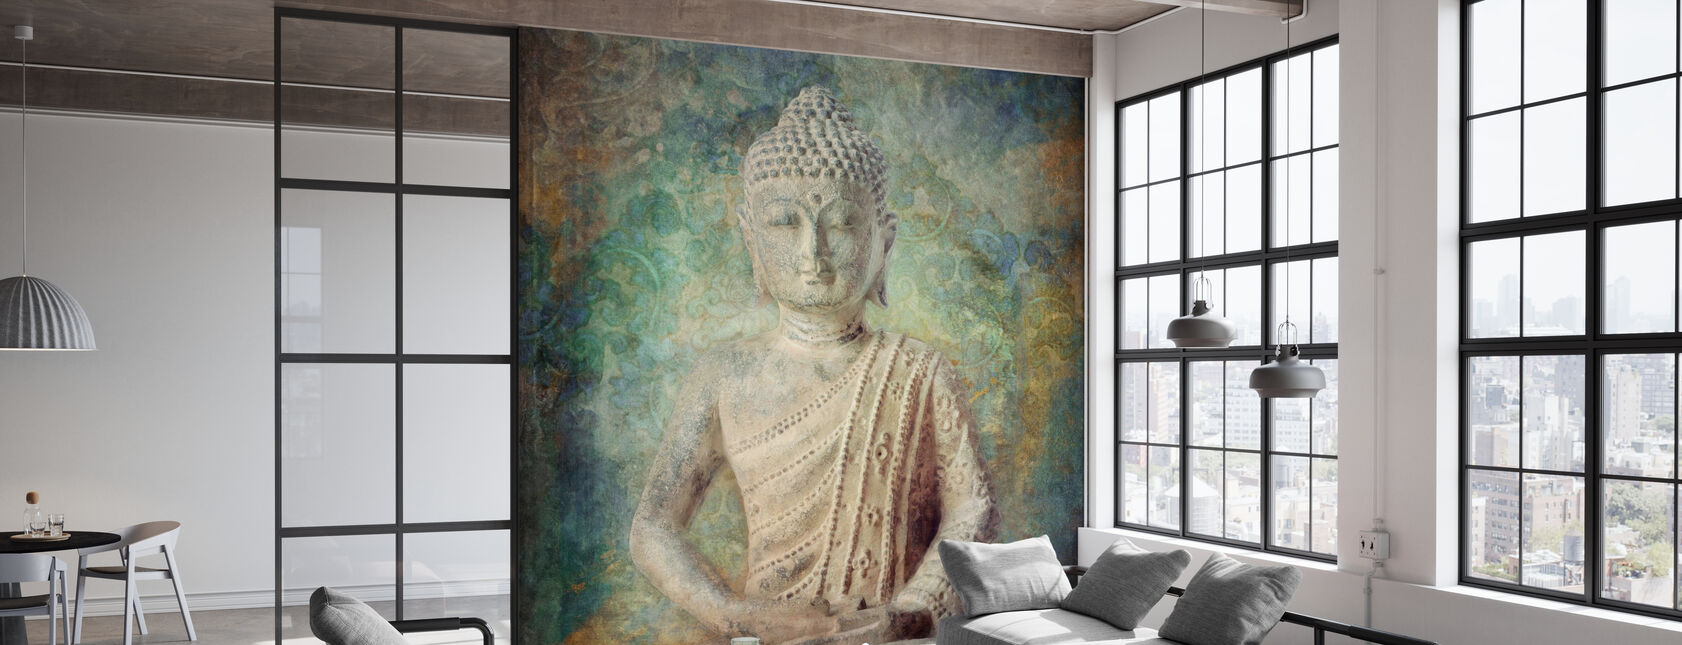 Tranquil Buddha Squared - Wallpaper - Office